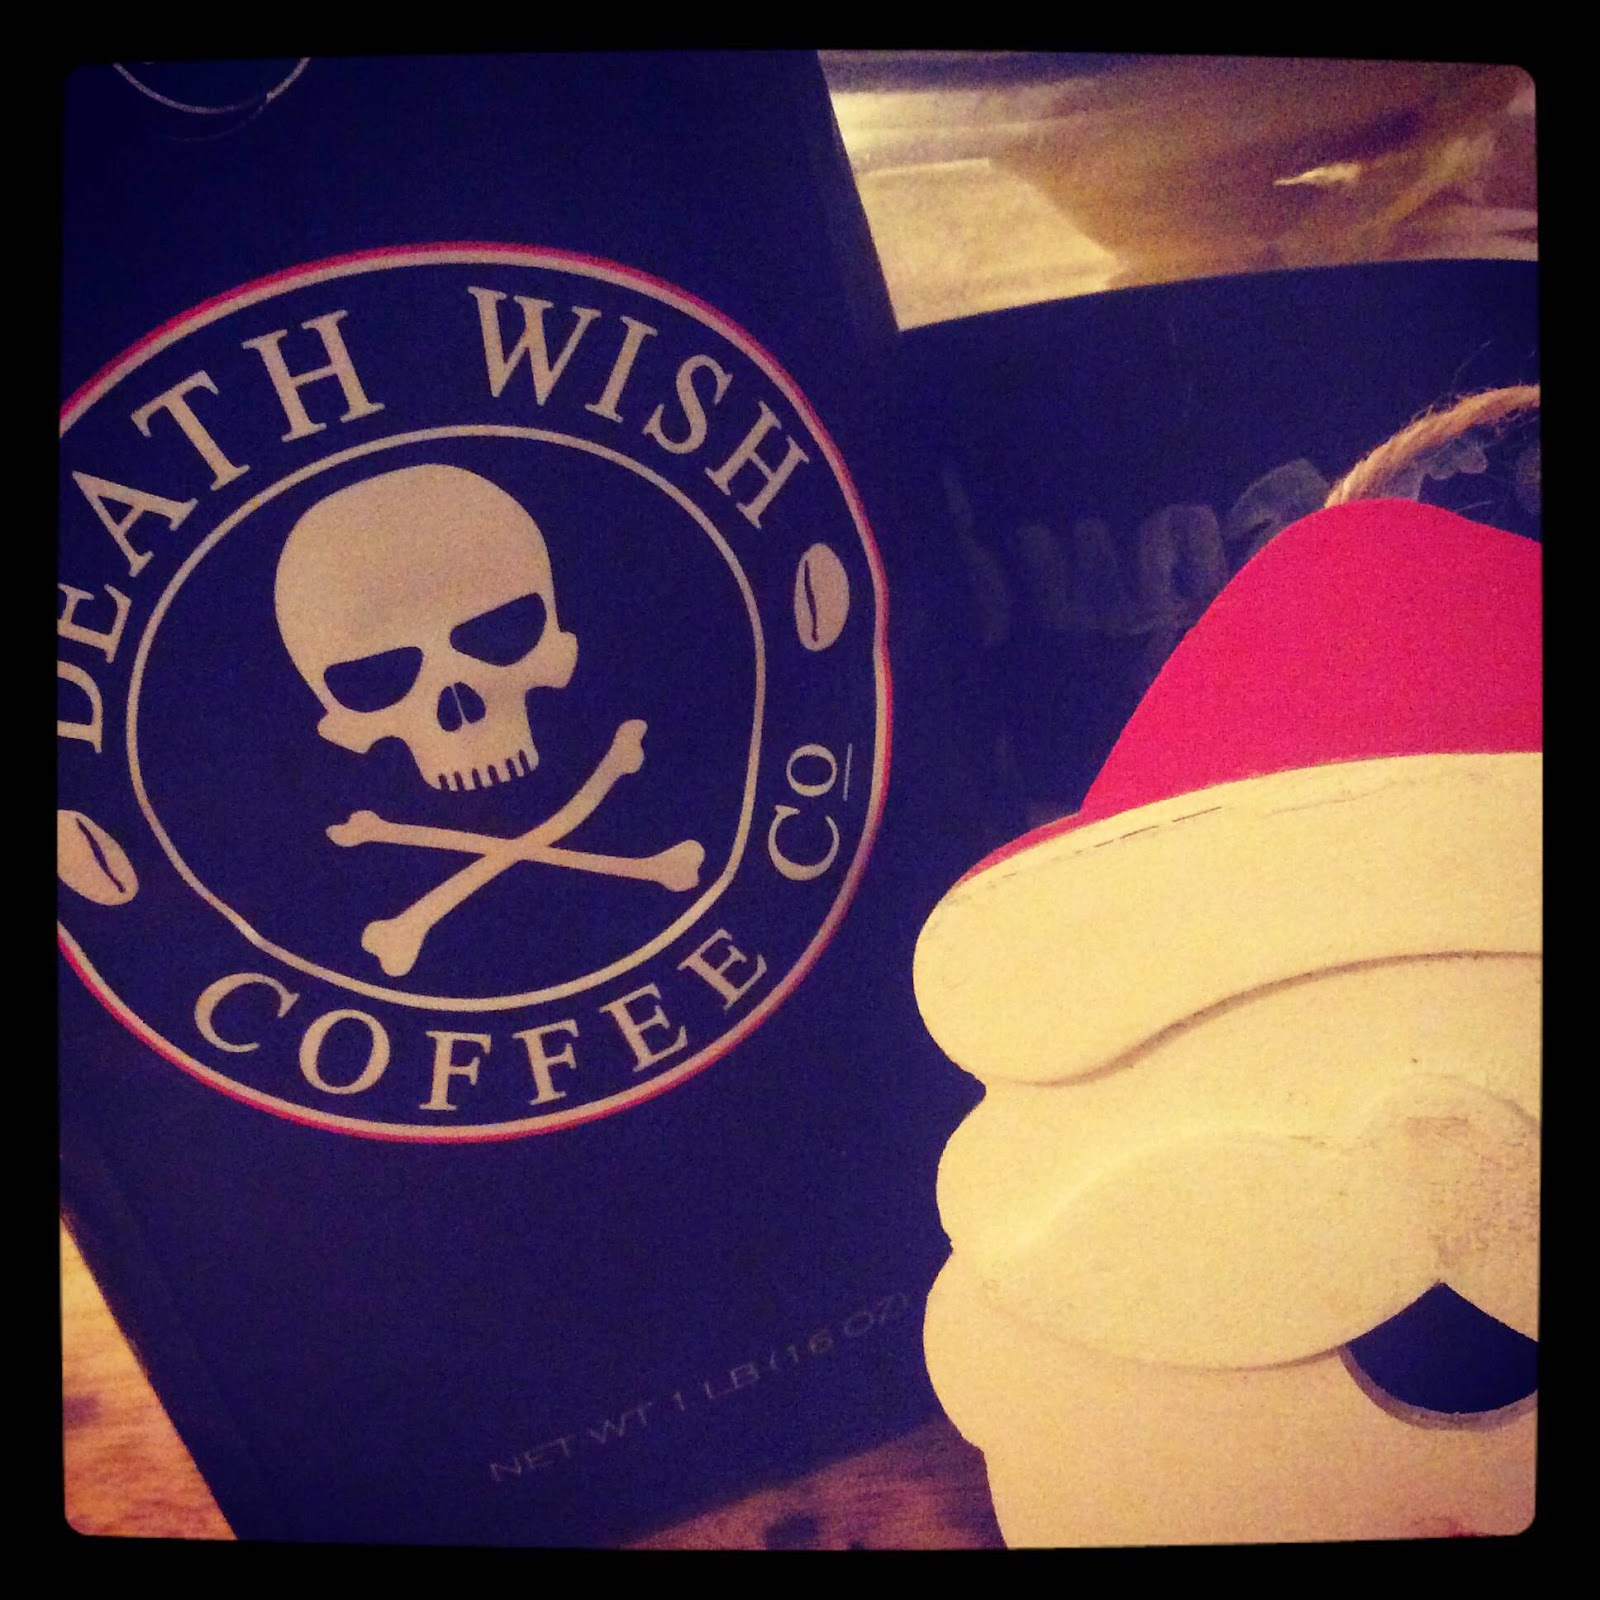 Death Wish Coffee: Part of SassyHolidays Gift Ideas